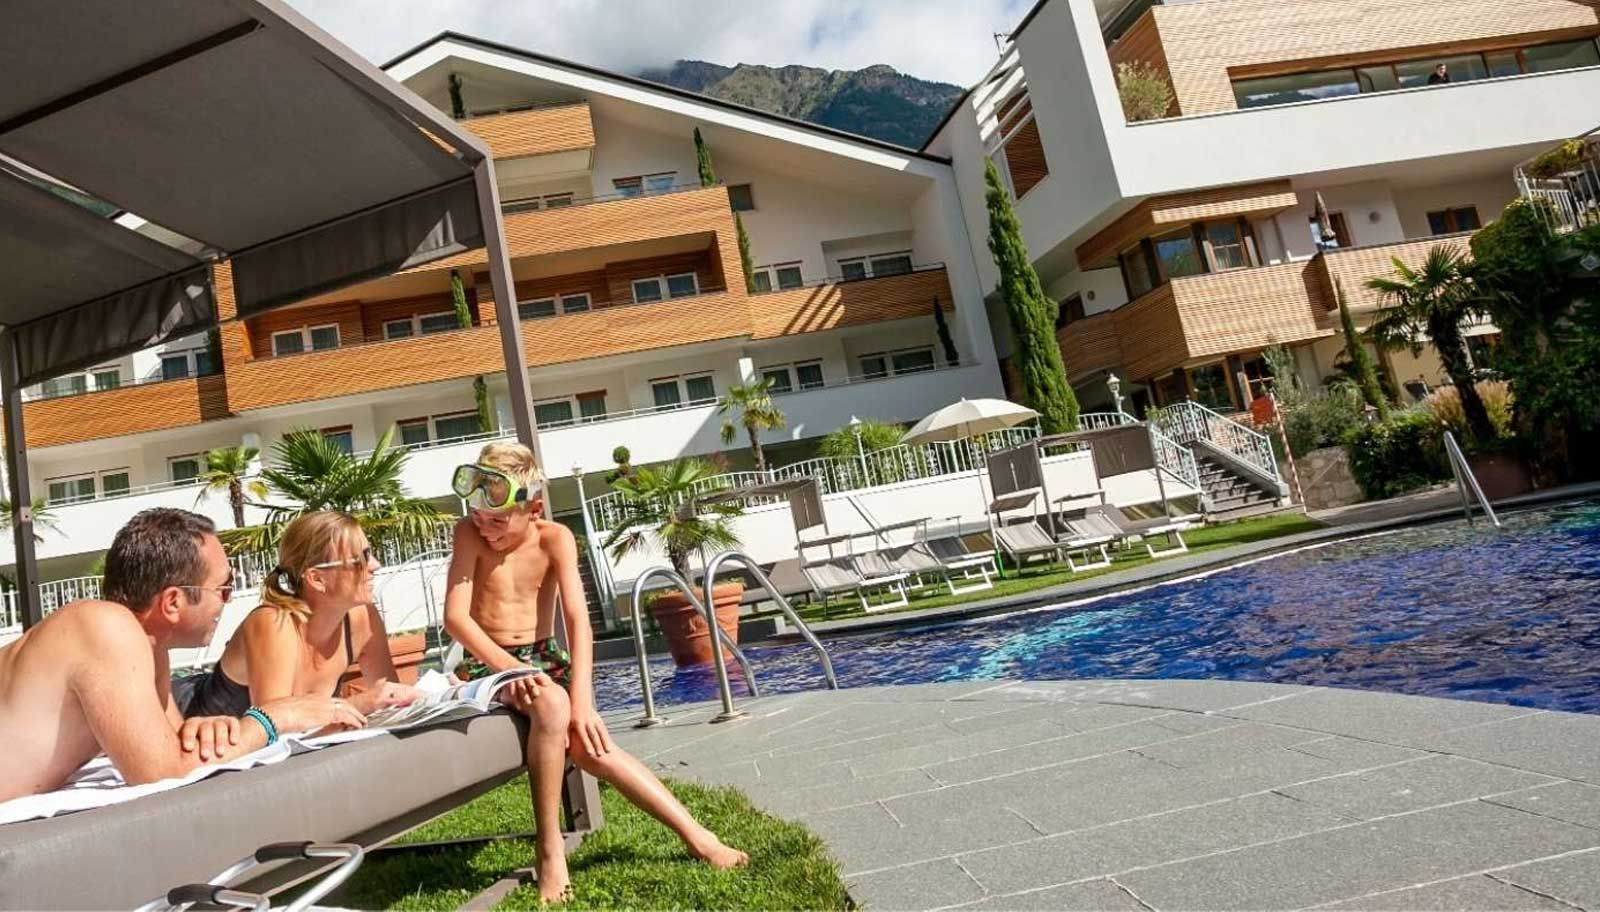 4 Sterne Familien- & Apartment-Hotel Tyrol in Naturns